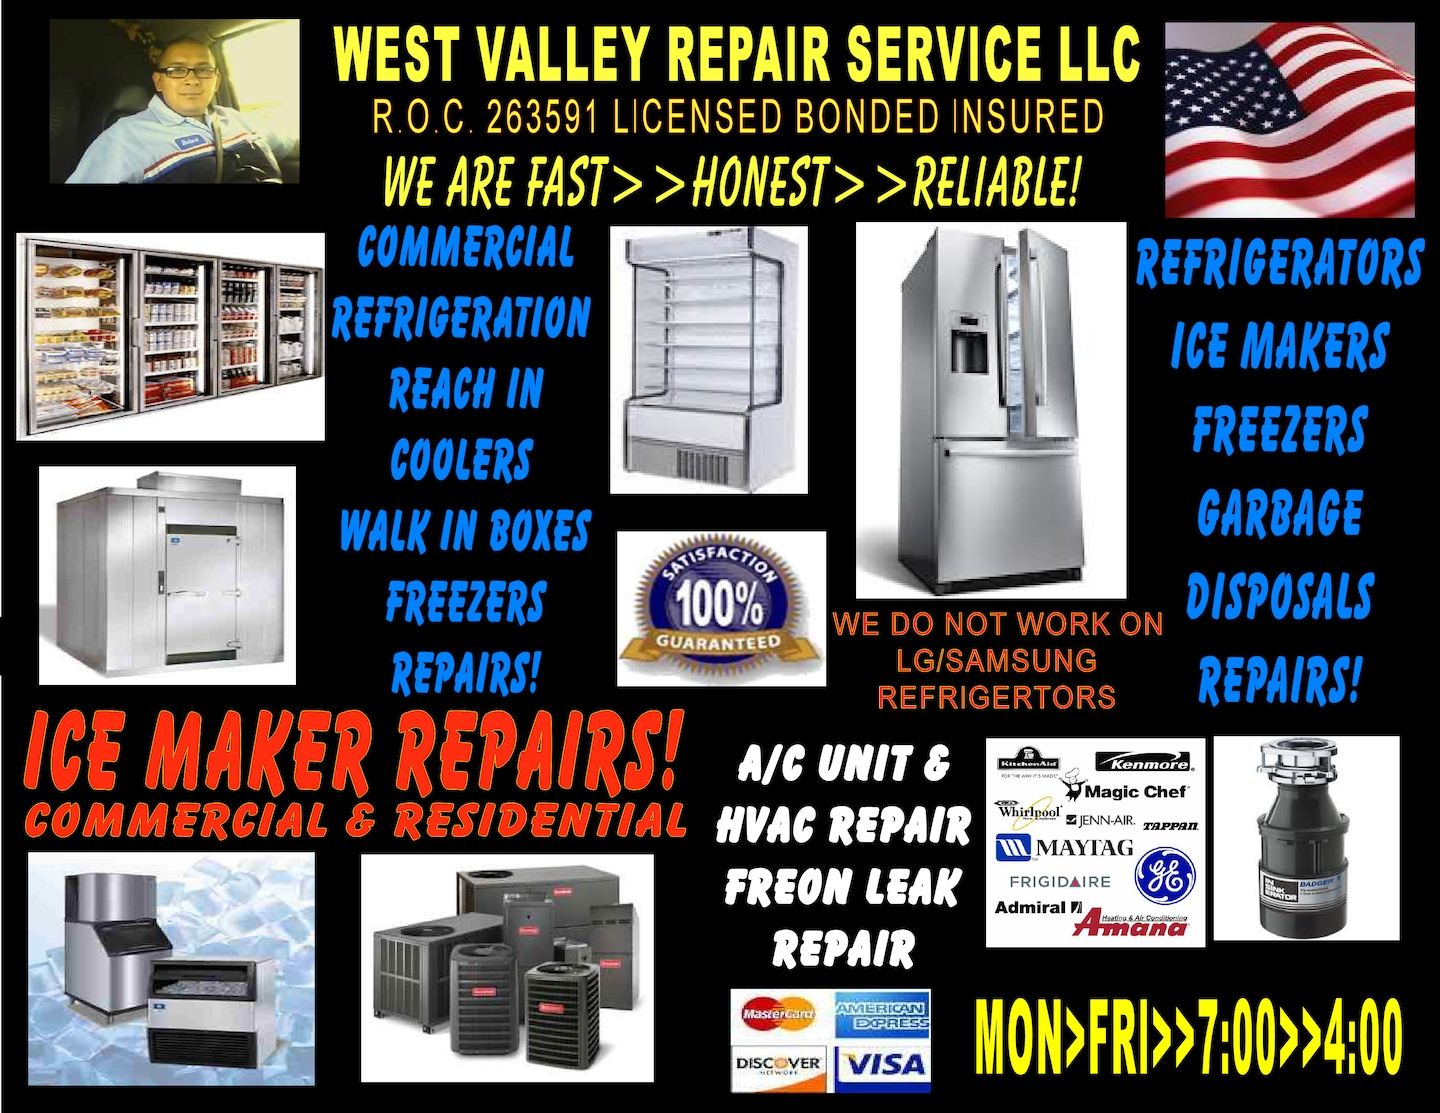 West Valley Repair Service LLC